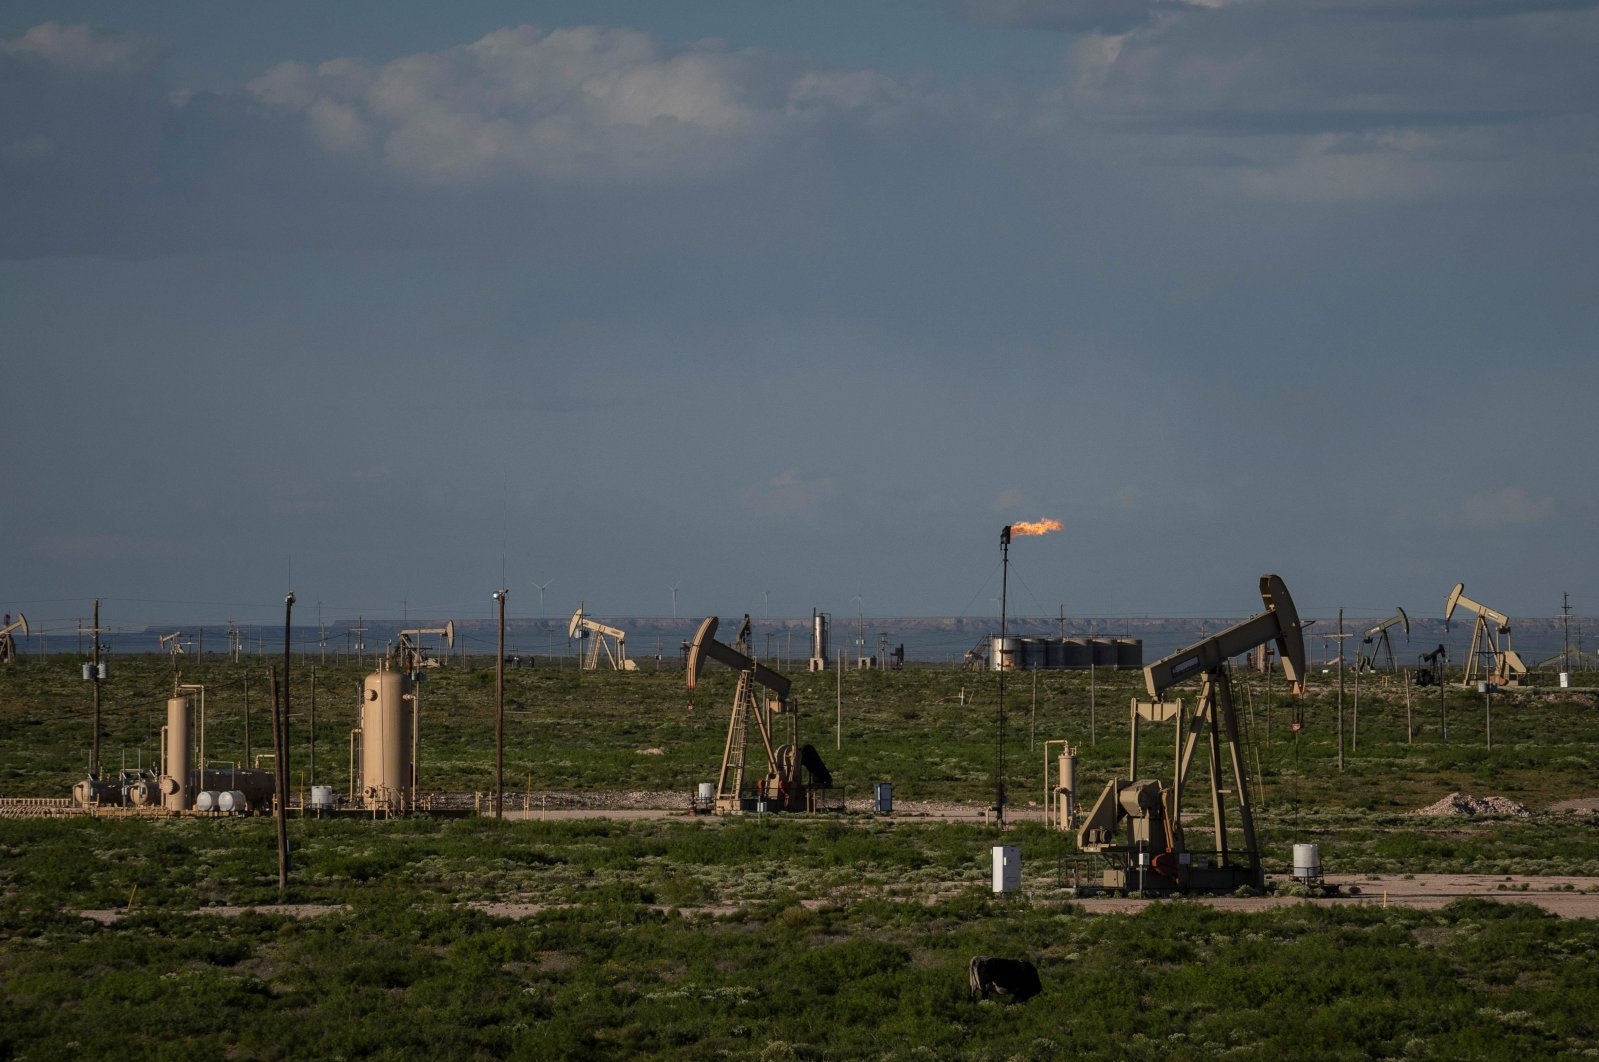 A pump jack operates near Loco Hills in Eddy County, New Mexico, U.S., April 23, 2020. (AFP Photo)